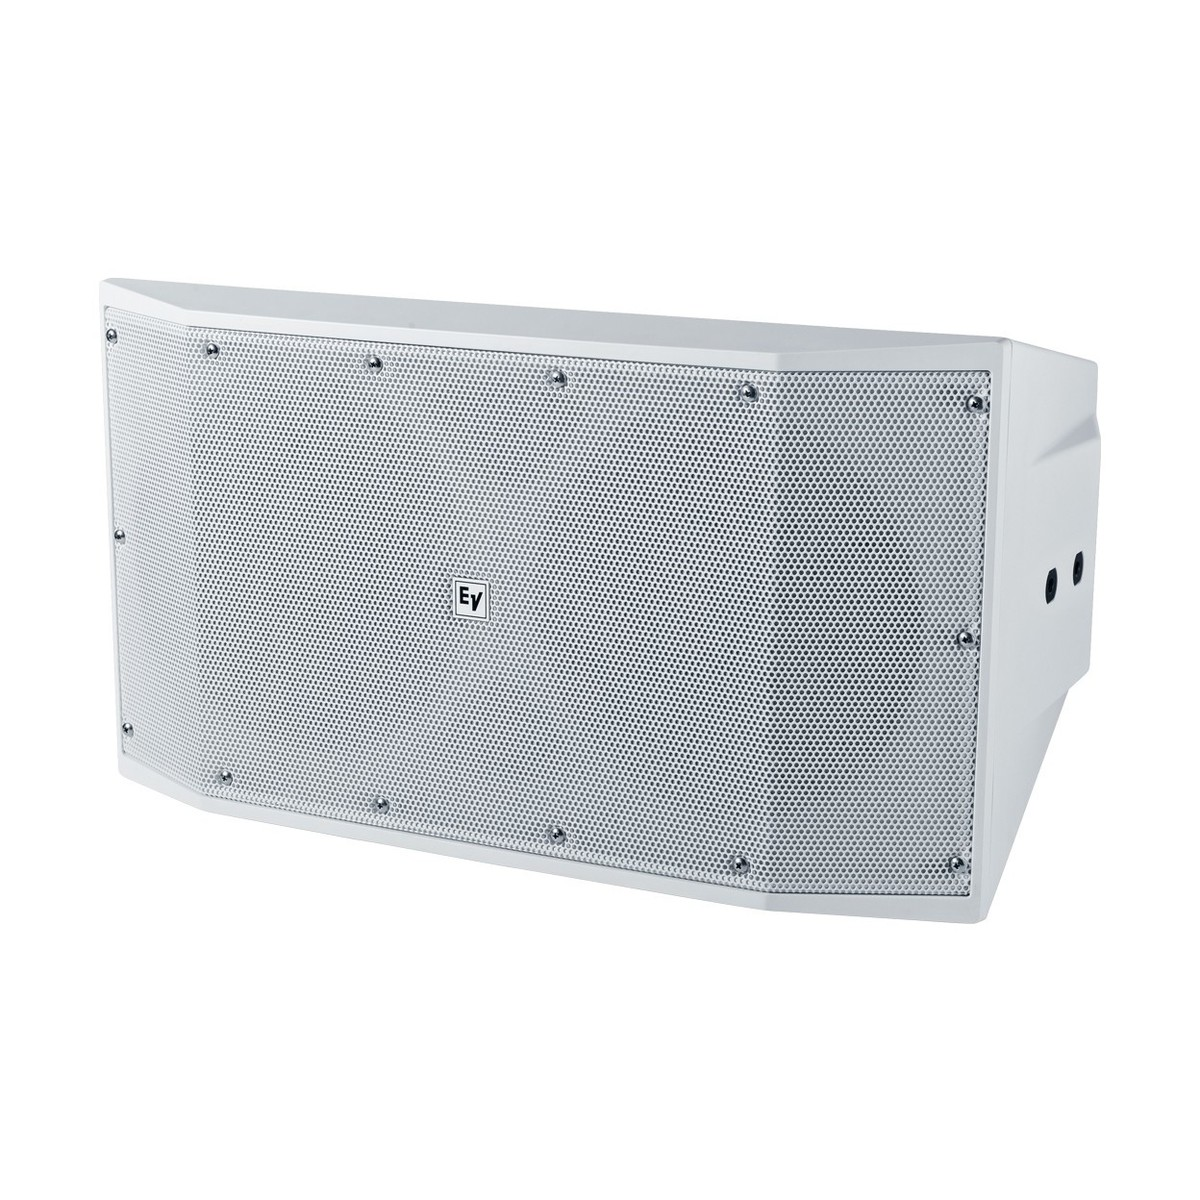 Electro Voice Evid S101 Installation Subwoofer White